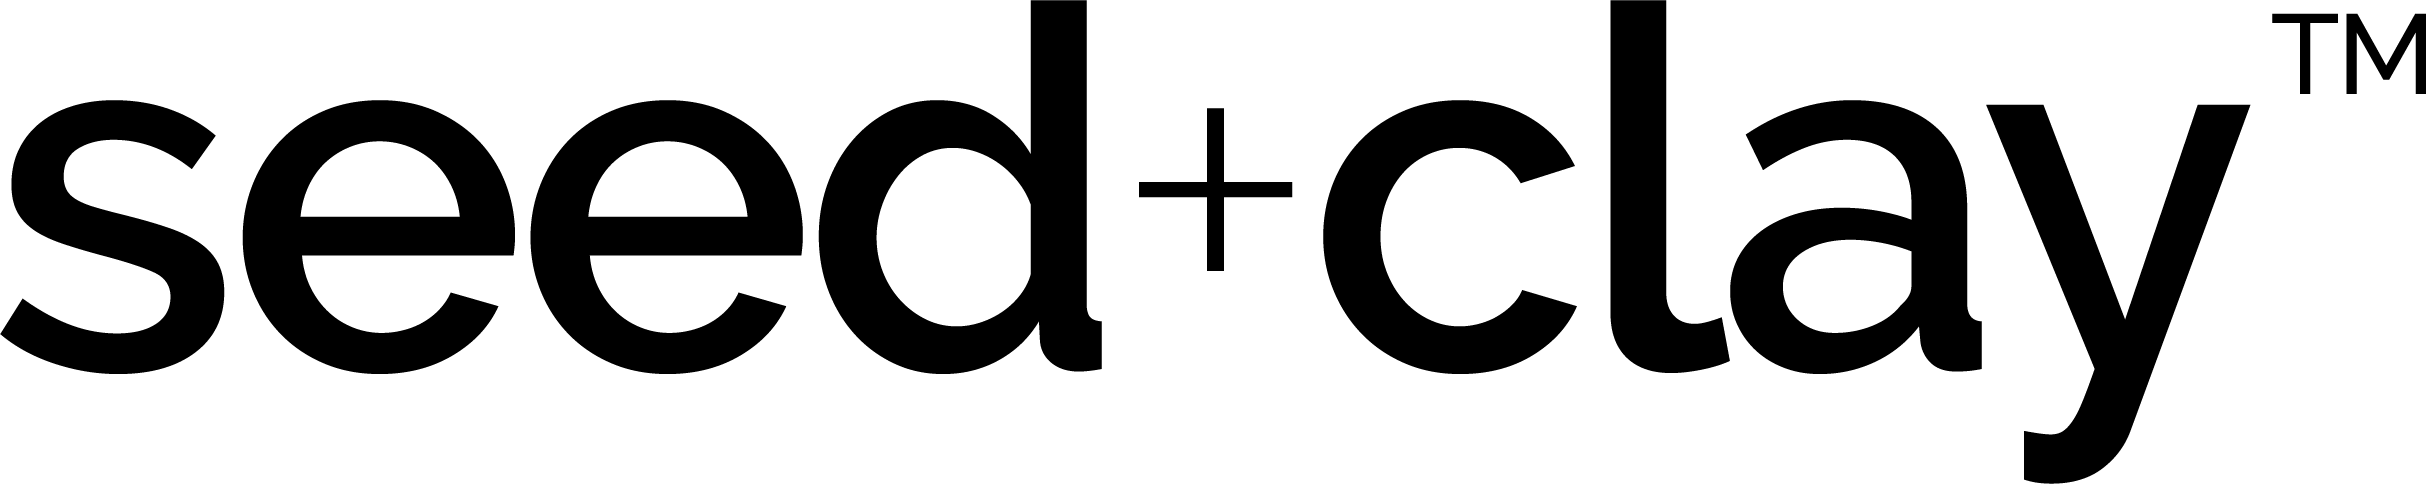 seed+clay logo standalone.png